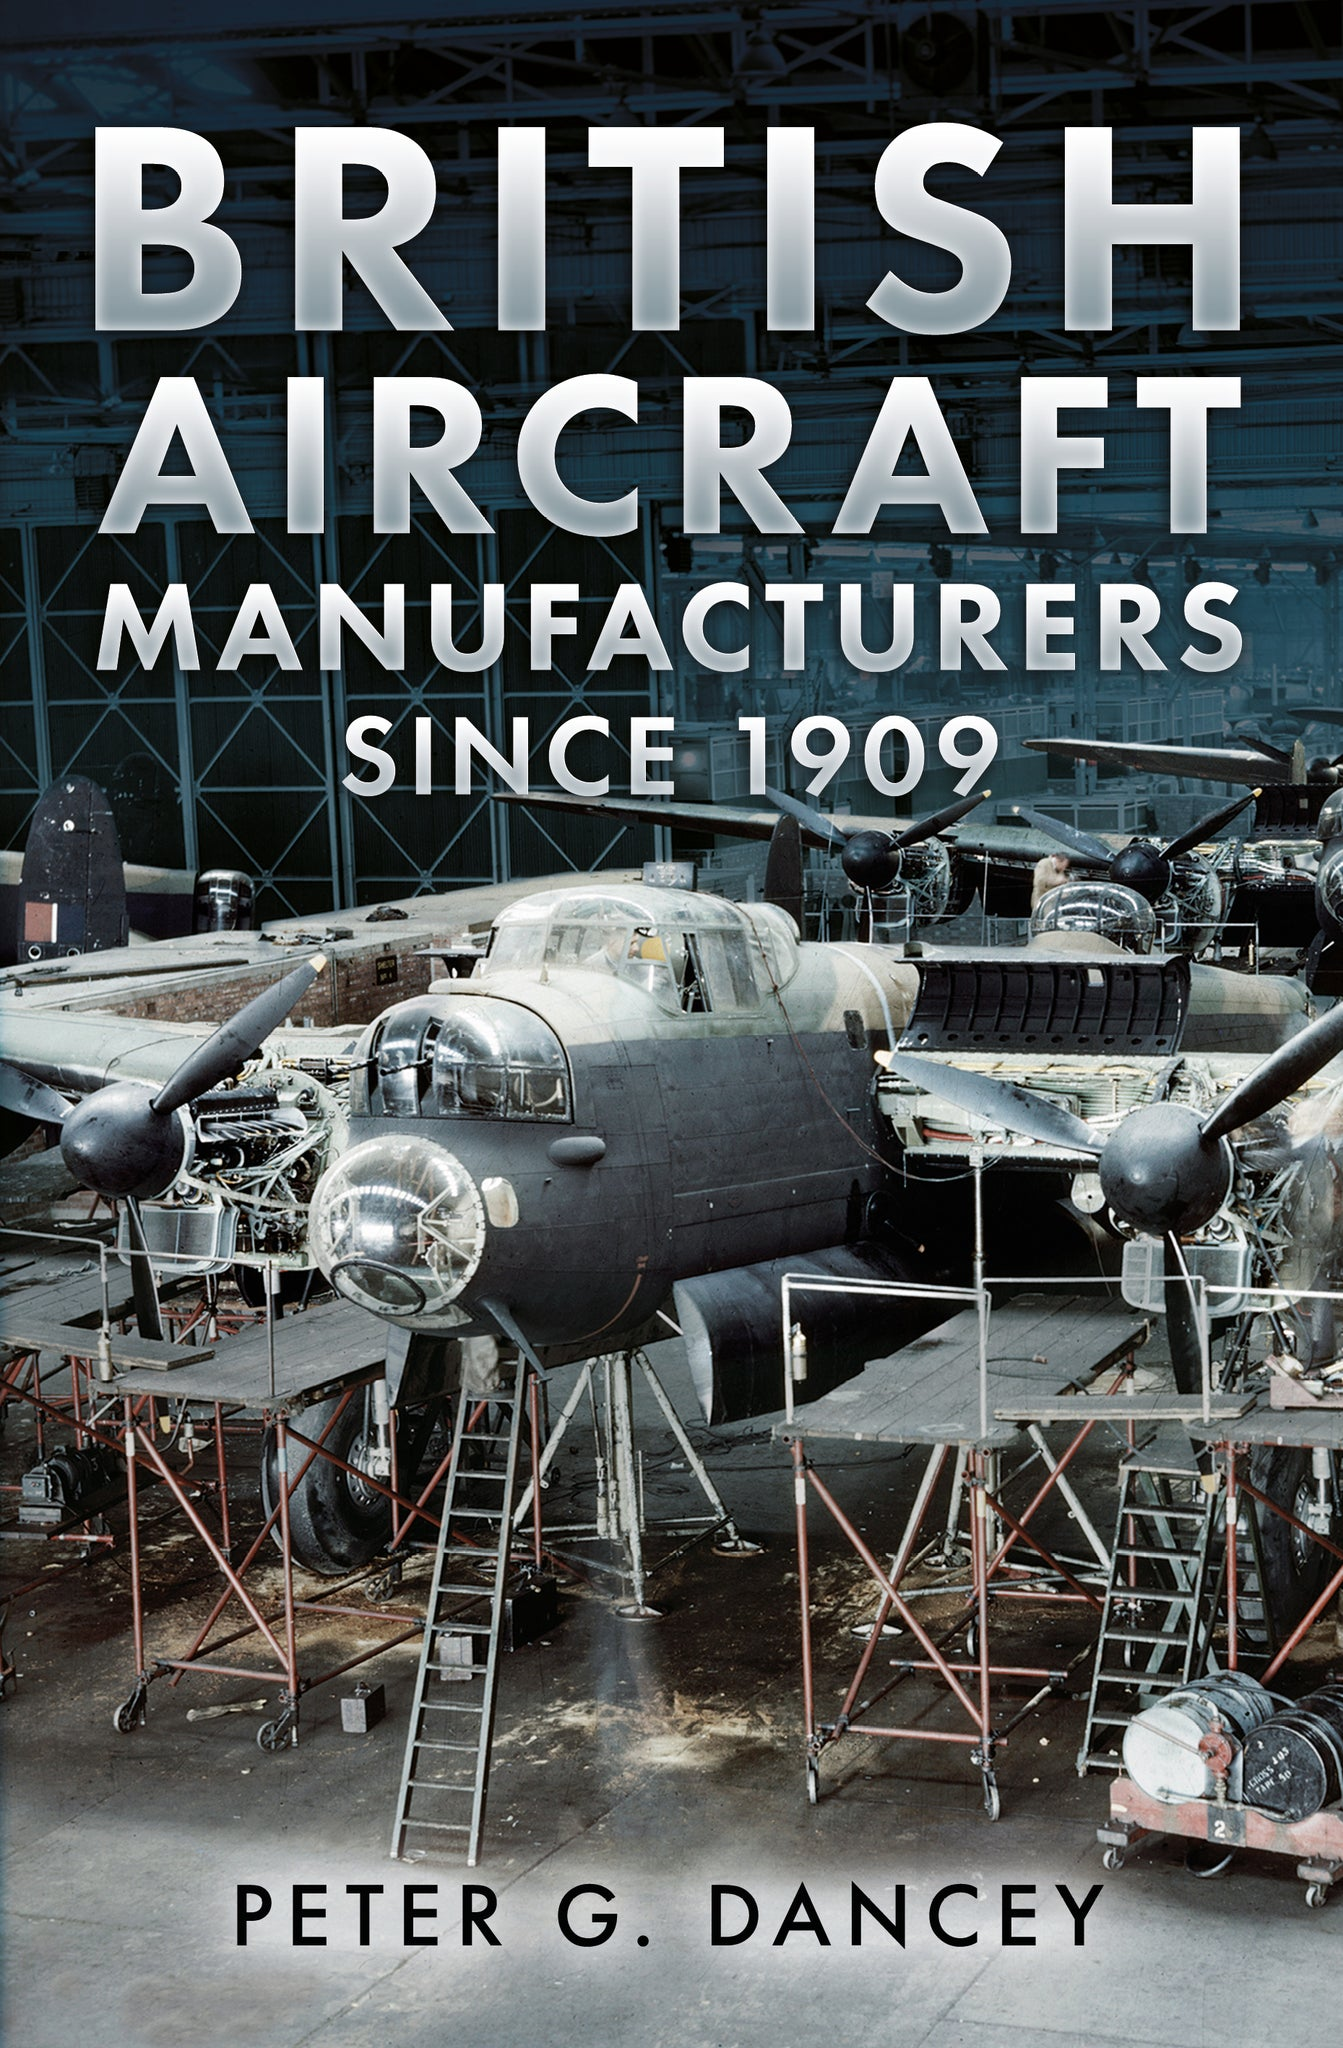 British Aircraft Manufacturers Since 1909 - available now from Fonthill Media